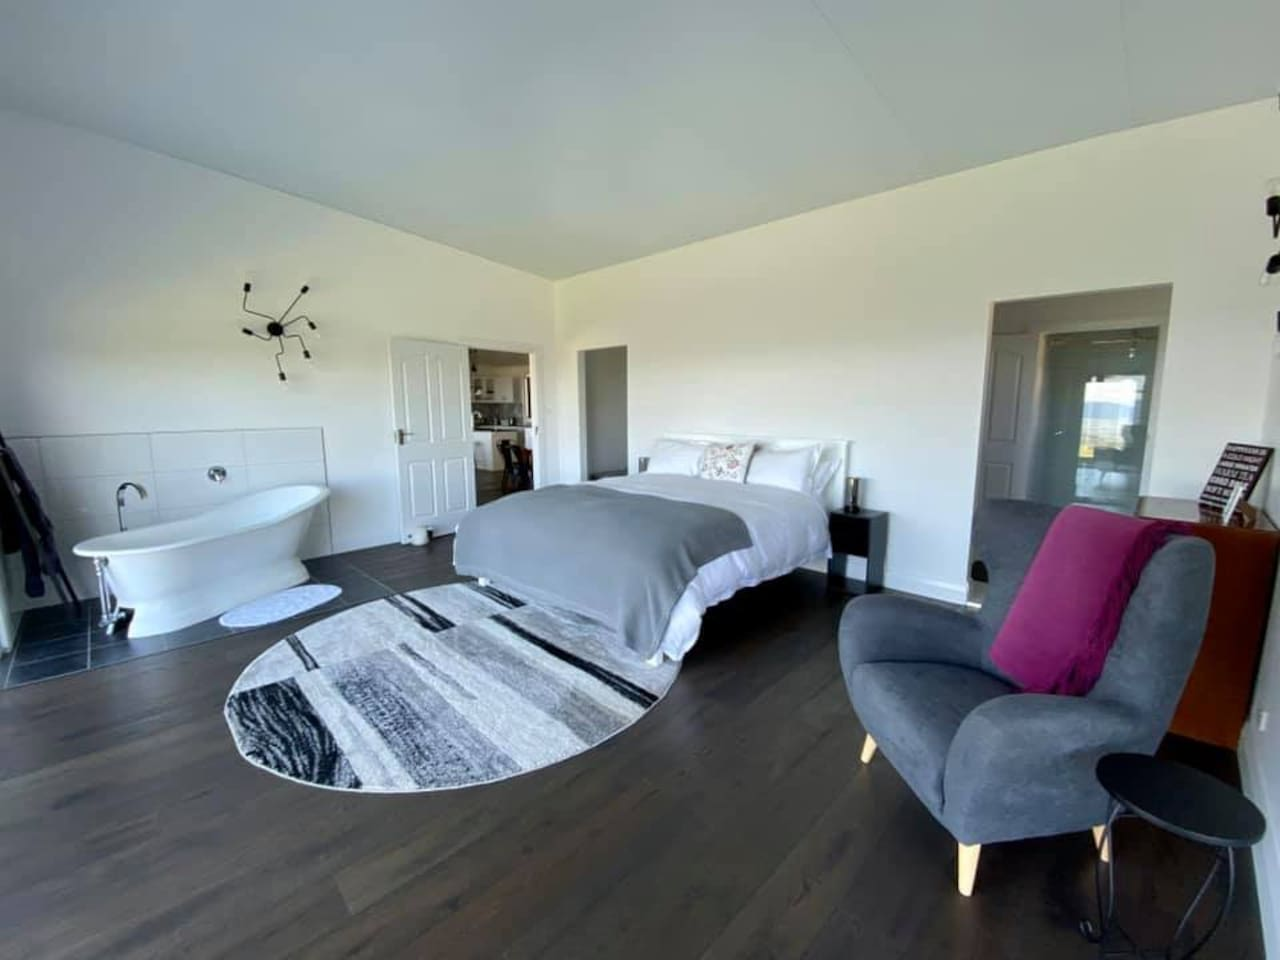 The Western bedroom with spacious ensuite is large and luxurious. It has a king-size bed, cast iron bath, and a comfy chair all facing the spectacular views to the north. At night the twinkling lights of Bathurst can be seen in the valley below.